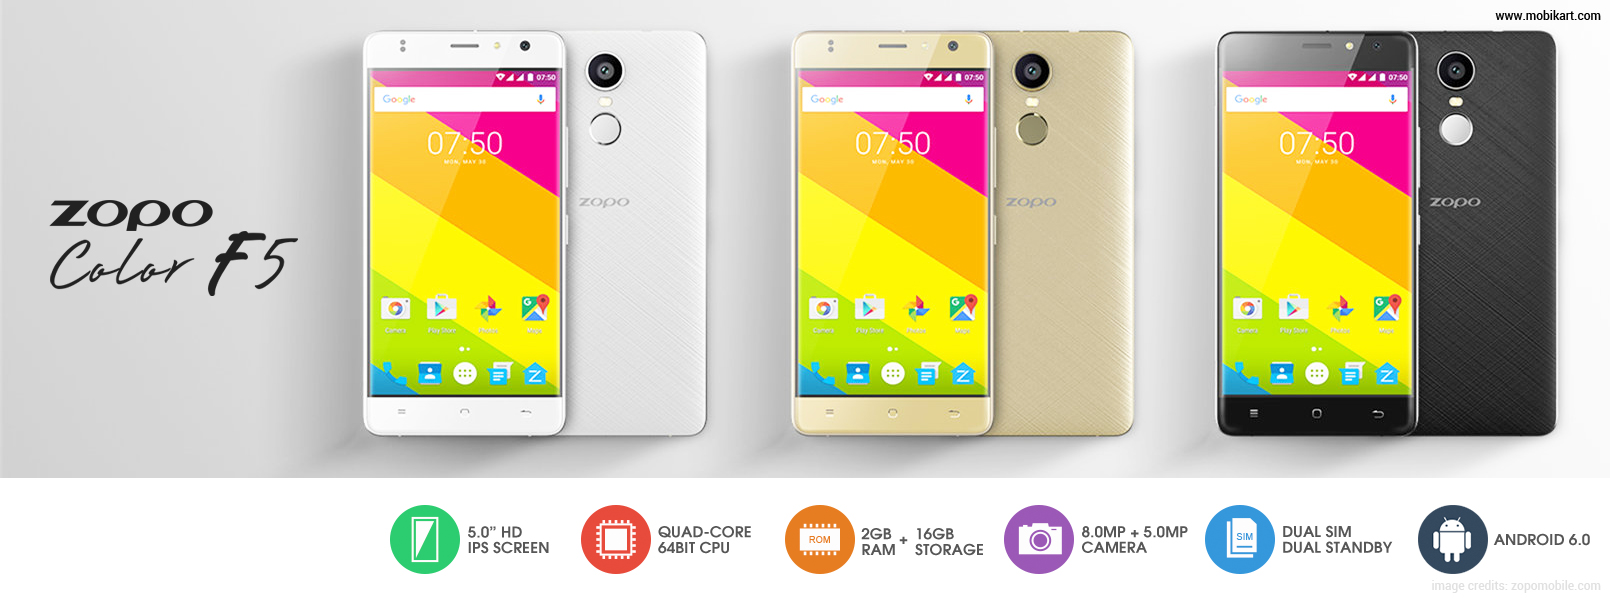 Zopo Color F5 Launched in India at a price of Rs 10,590